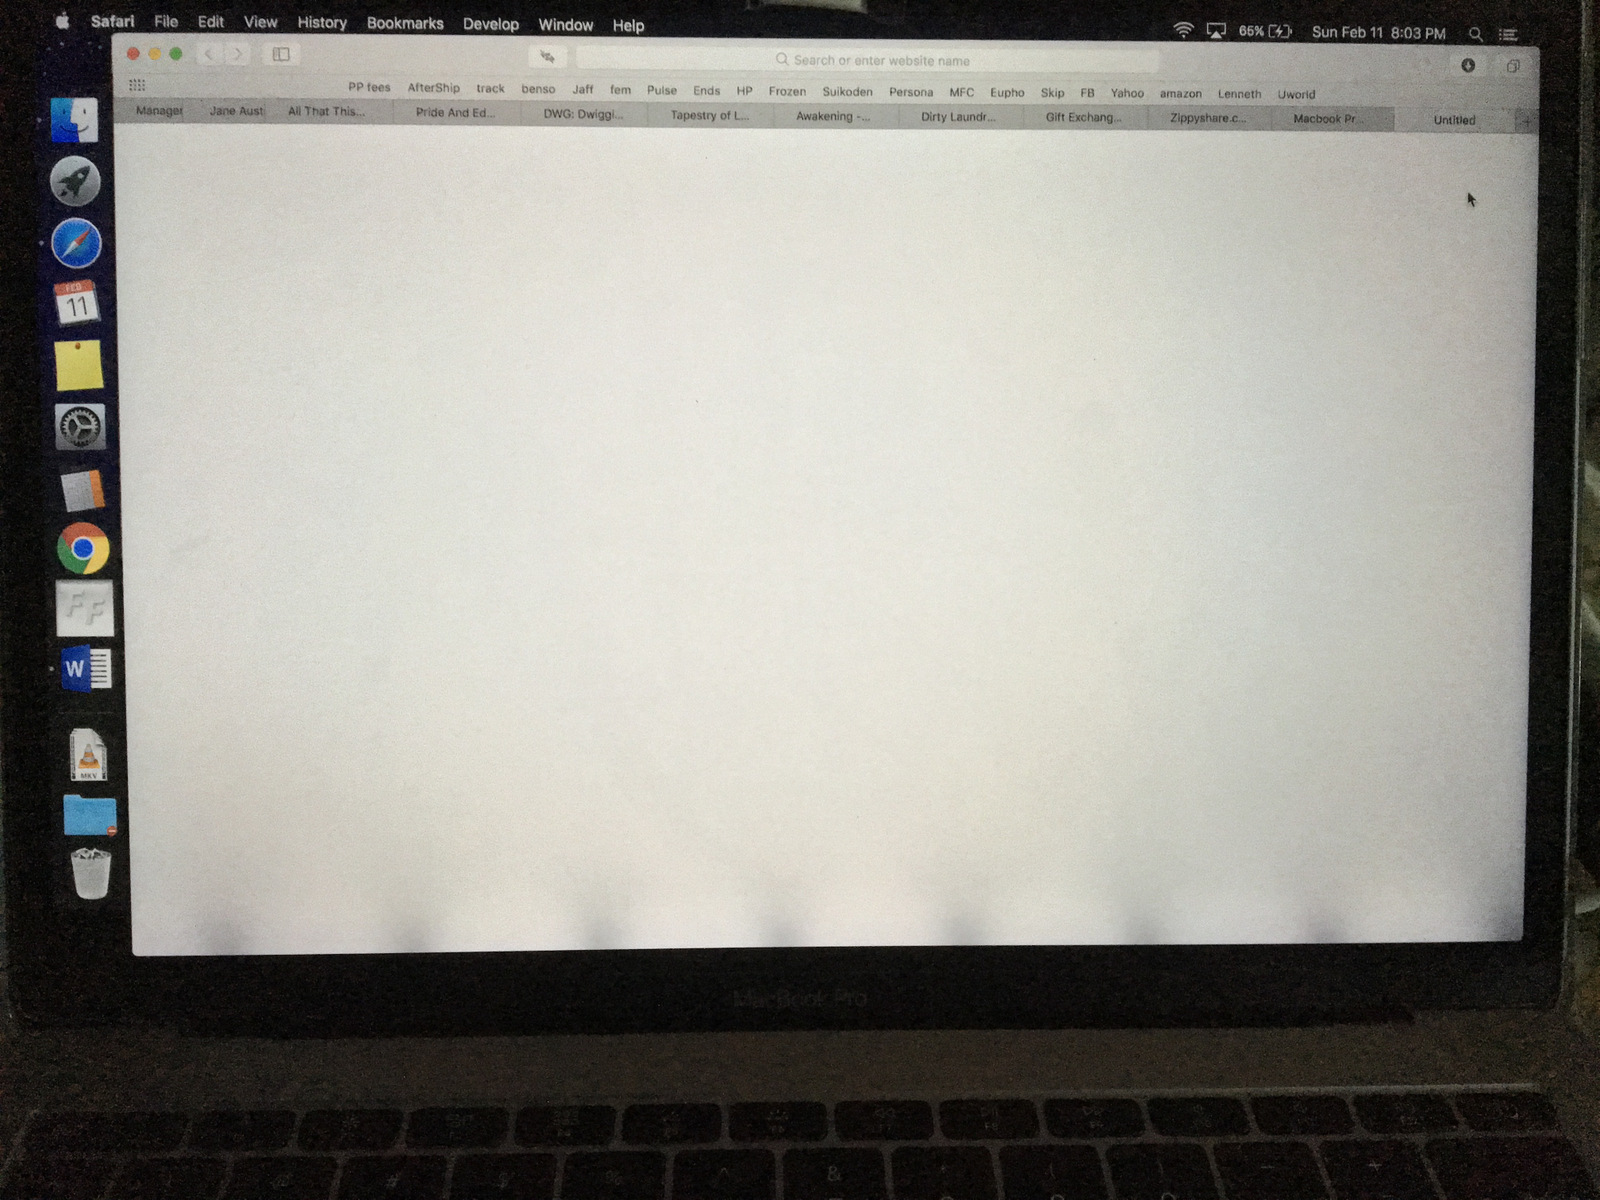 Macbook Pro Retina 2016 - 2017 Keyboard and LCD issues